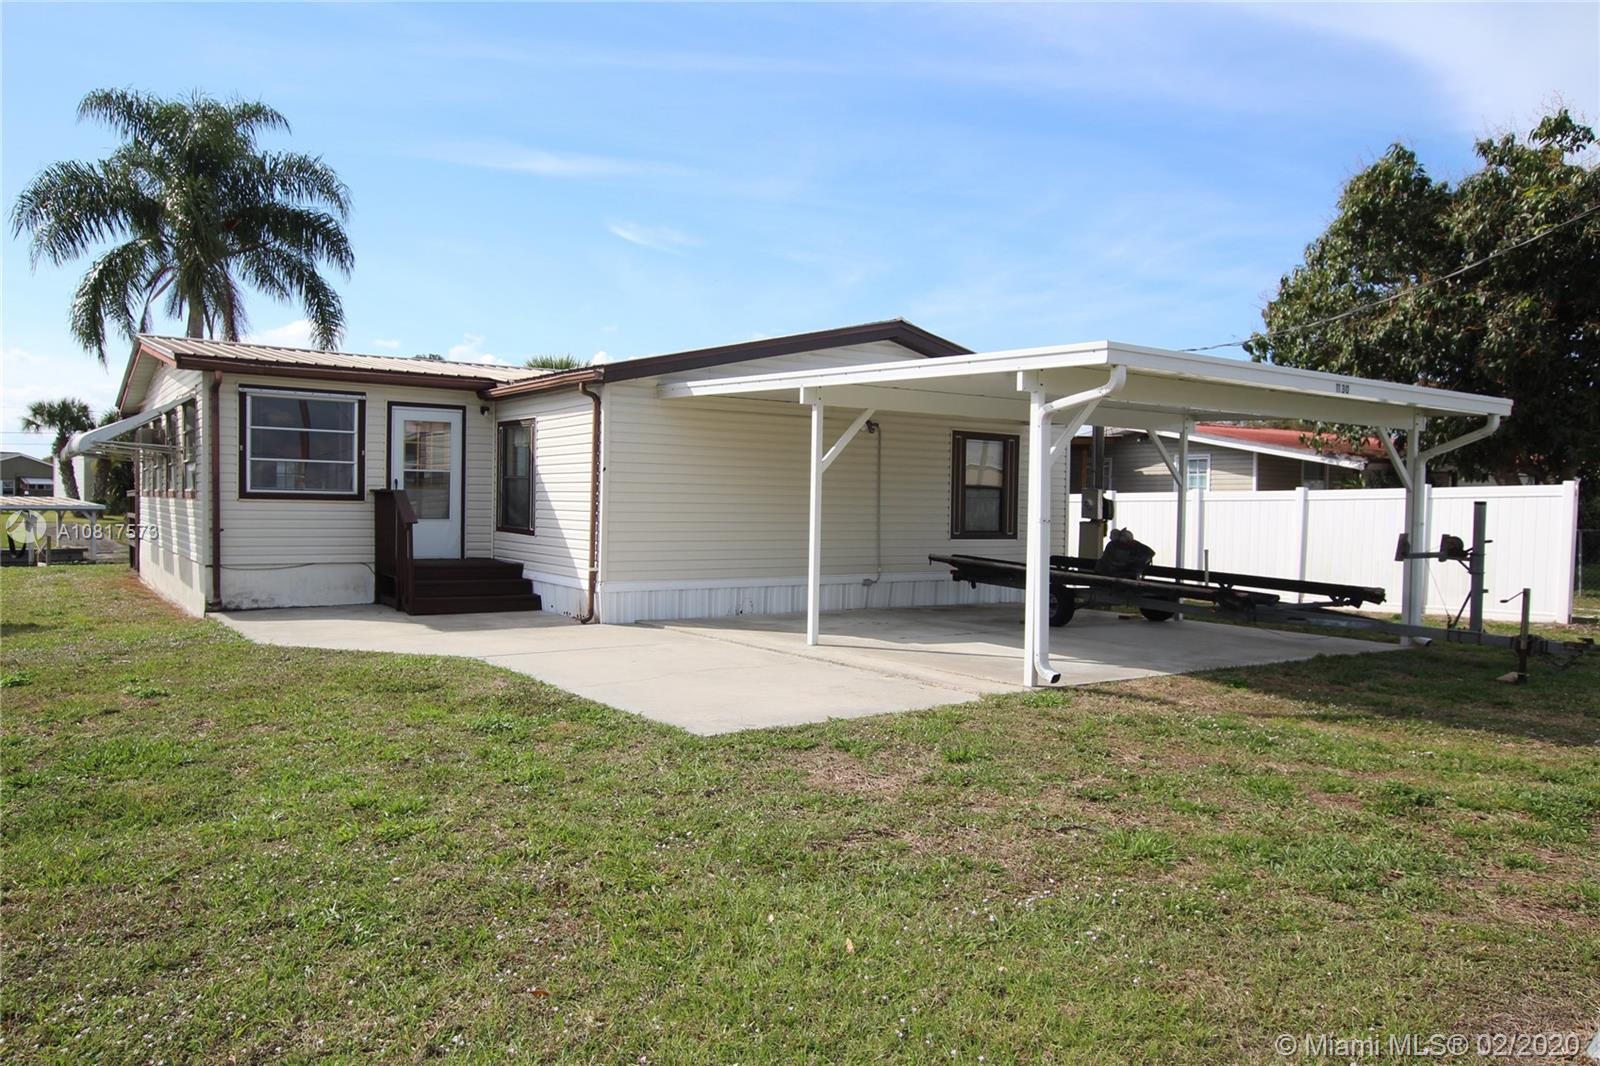 1130 21st Street Property Photo - Bulkhead Ridge, FL real estate listing